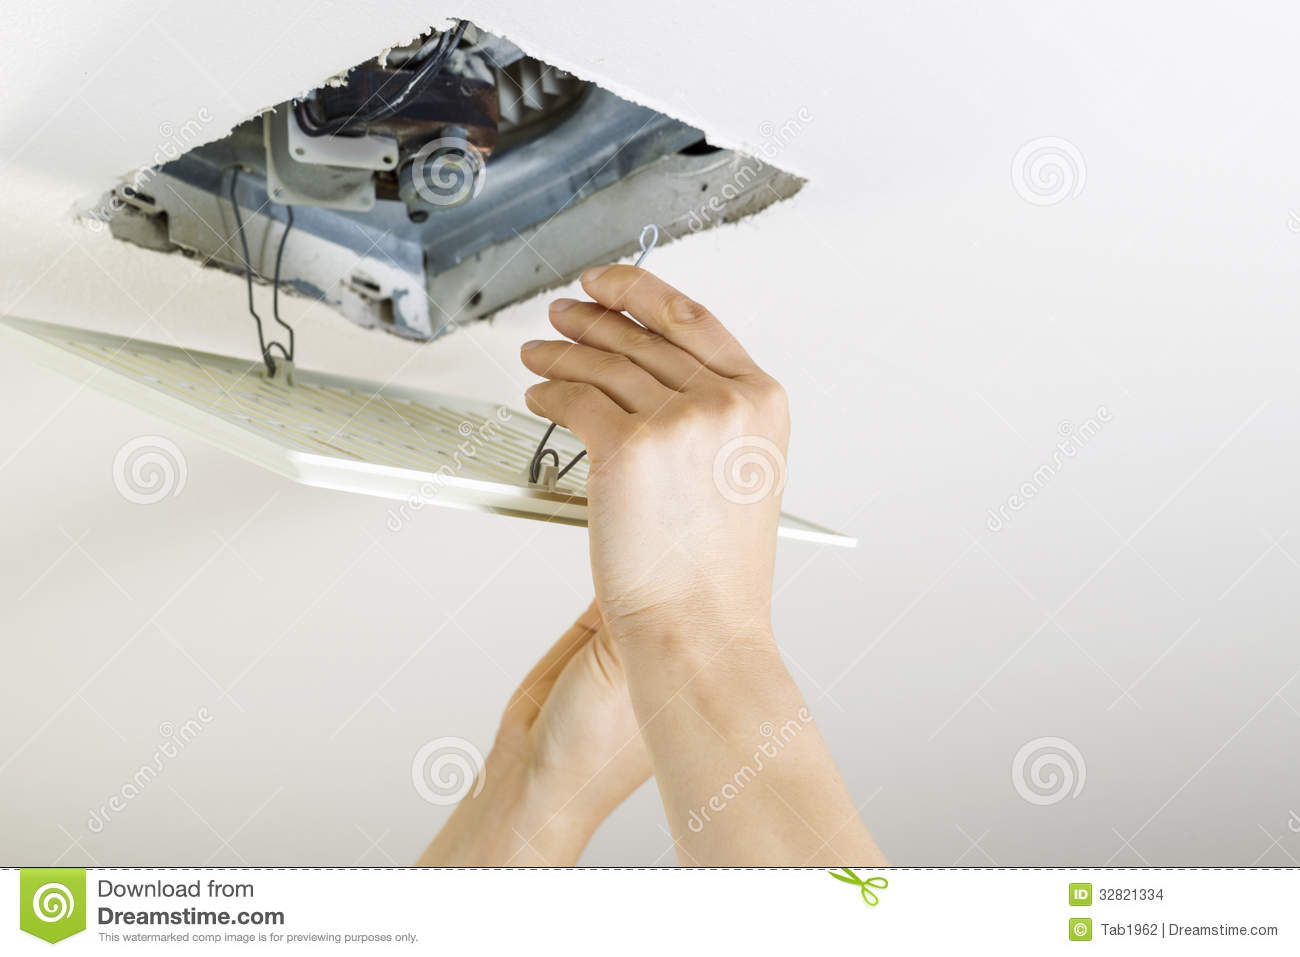 Installing clean bathroom fan vent cover stock images for Bathroom exhaust fan cover